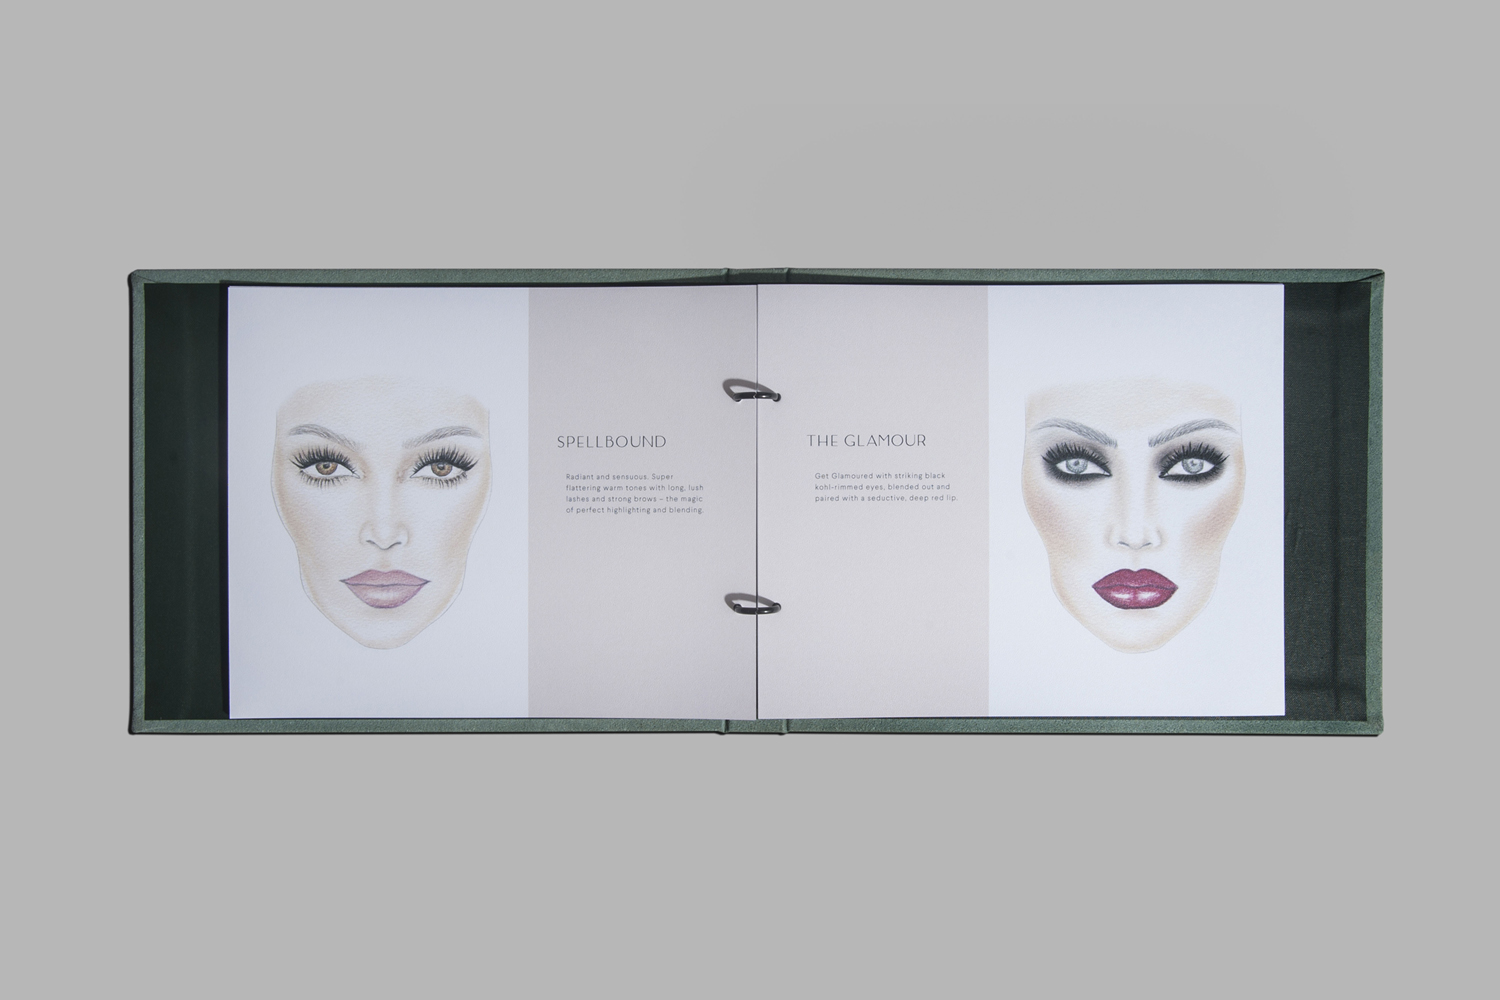 Illustrated menu by Canadian studio Glasfurd & Walker for Vancouver-based beauty salon The Glamoury.